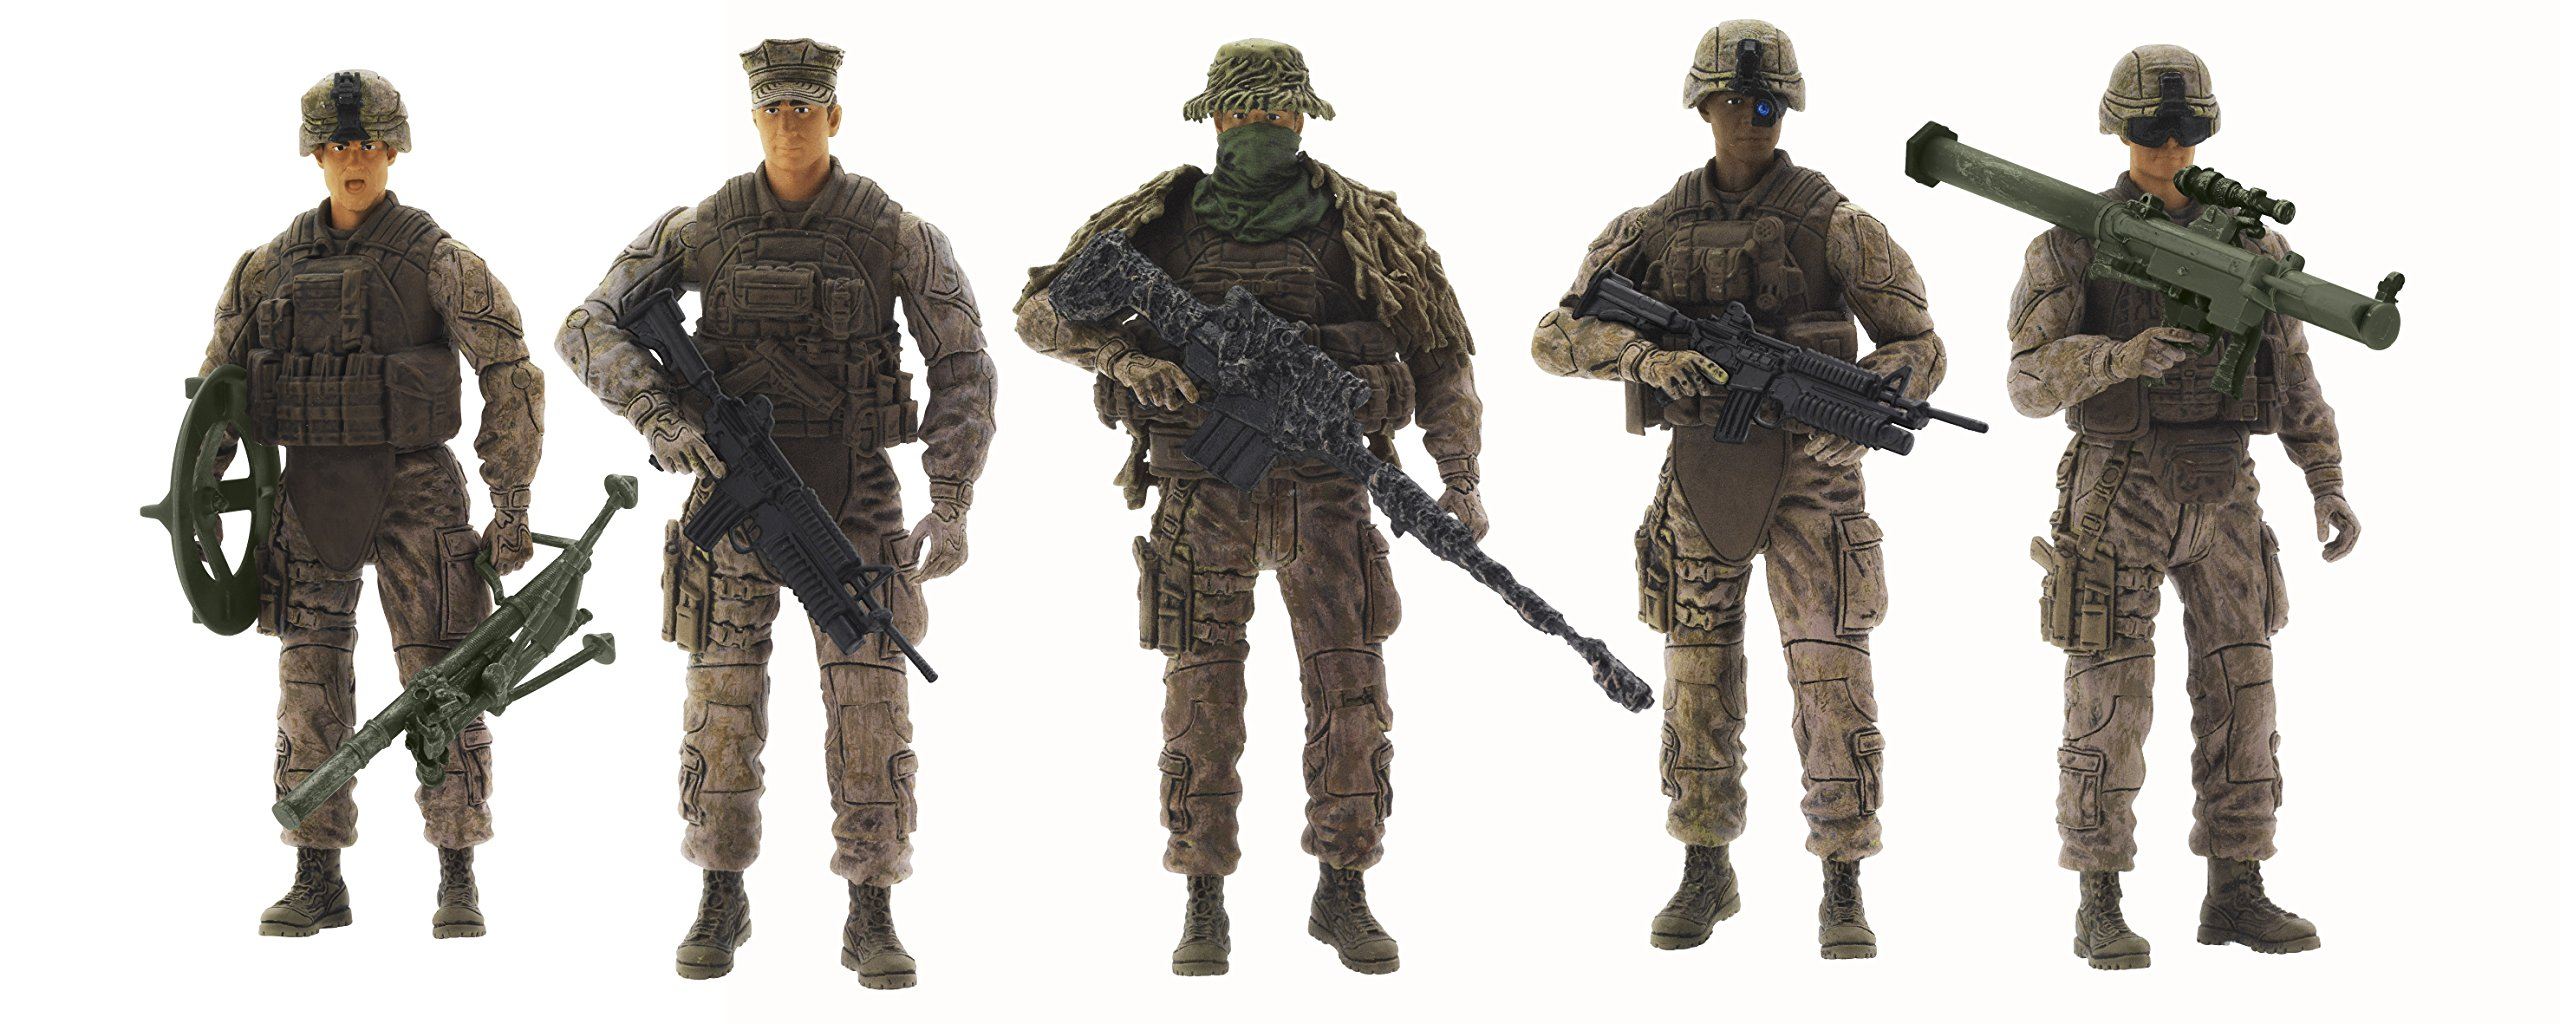 Military Toys Elite Force 1 18 : Marine action figures scale toy soldiers elite